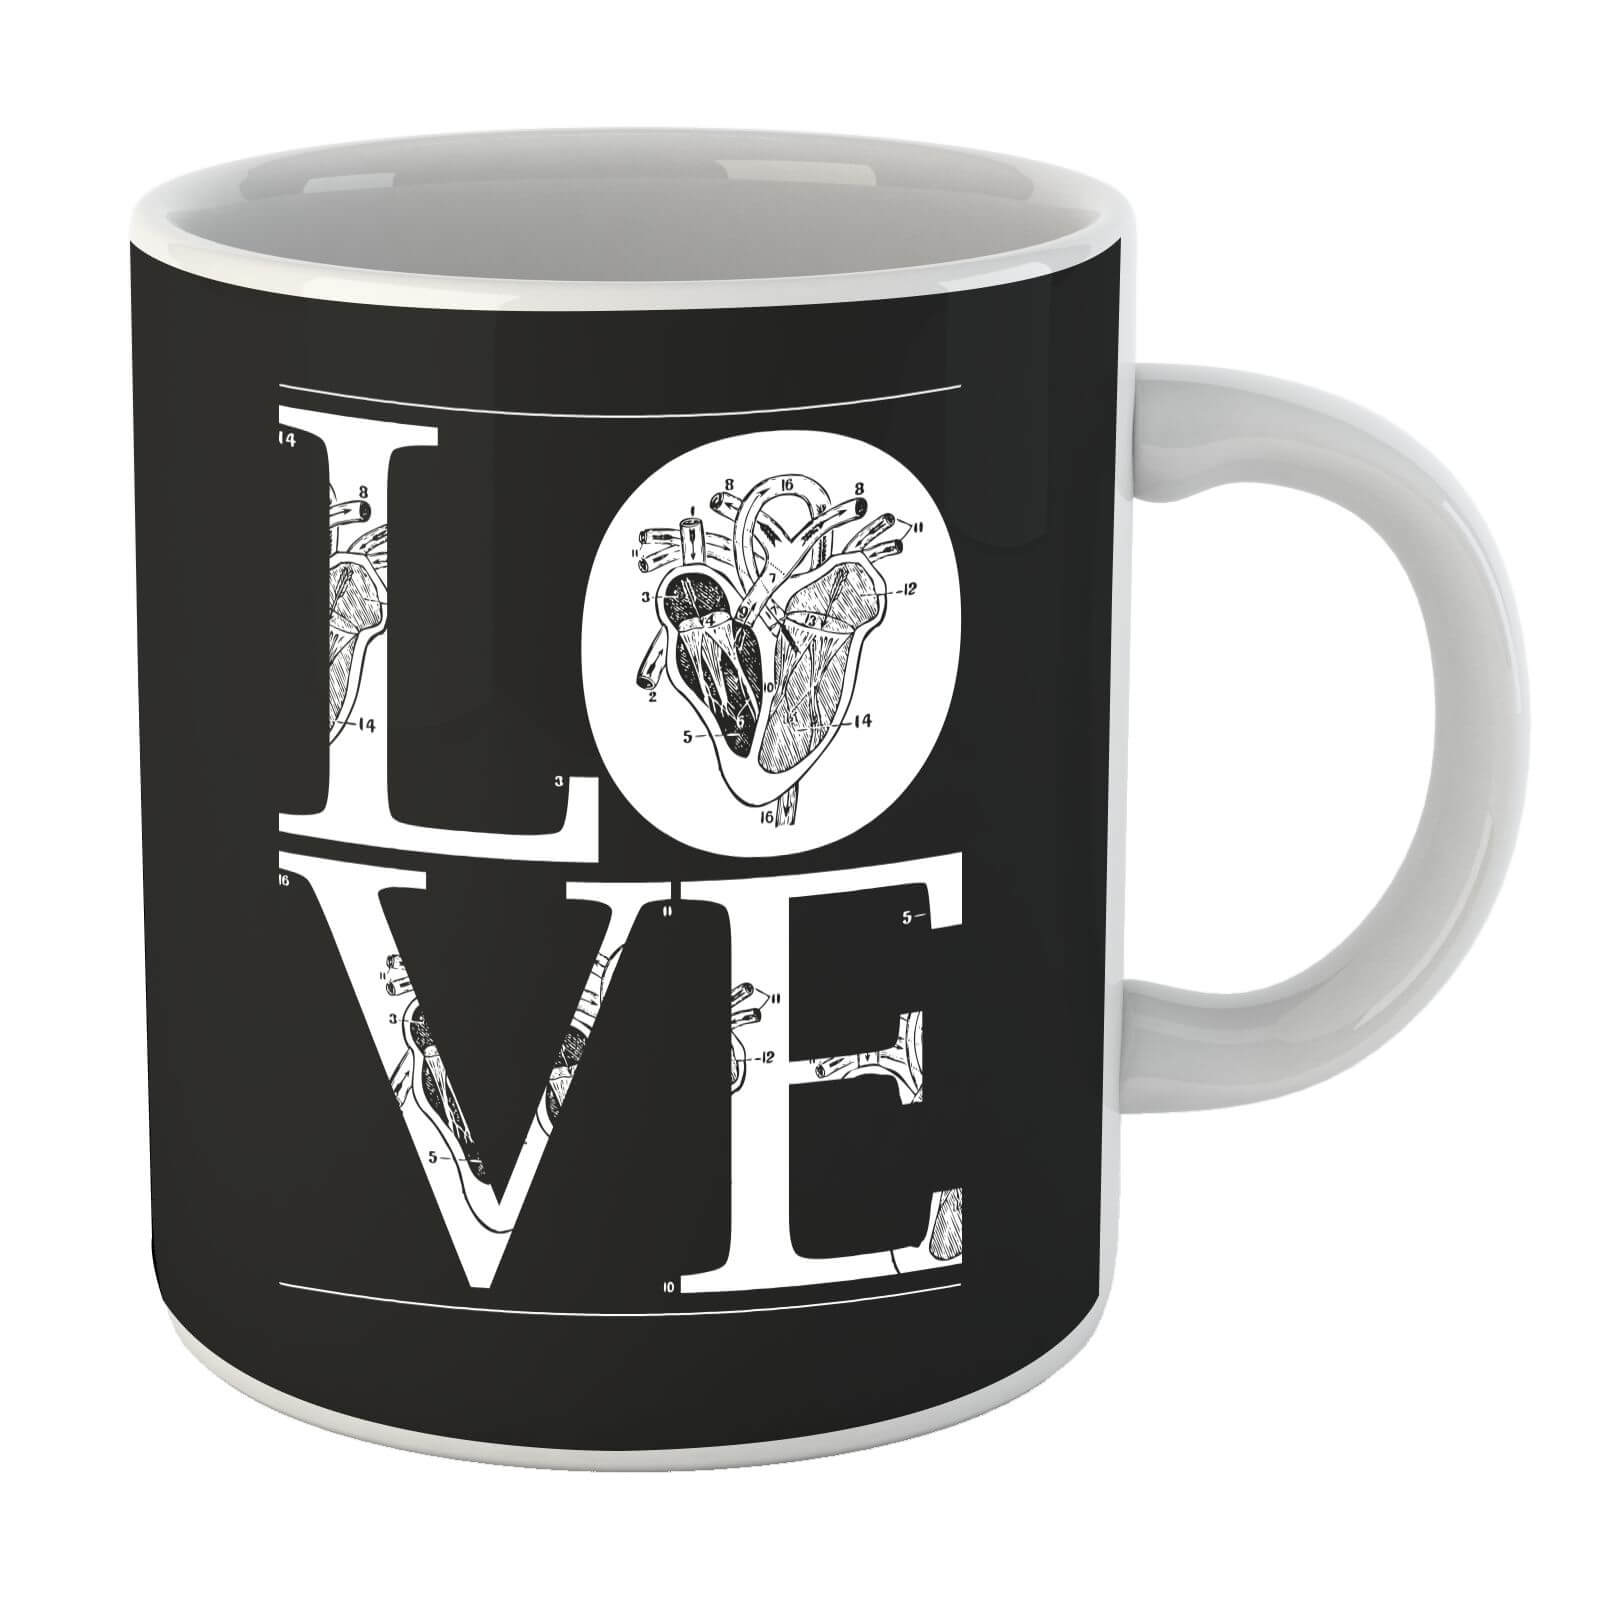 Anatomic Love Mug